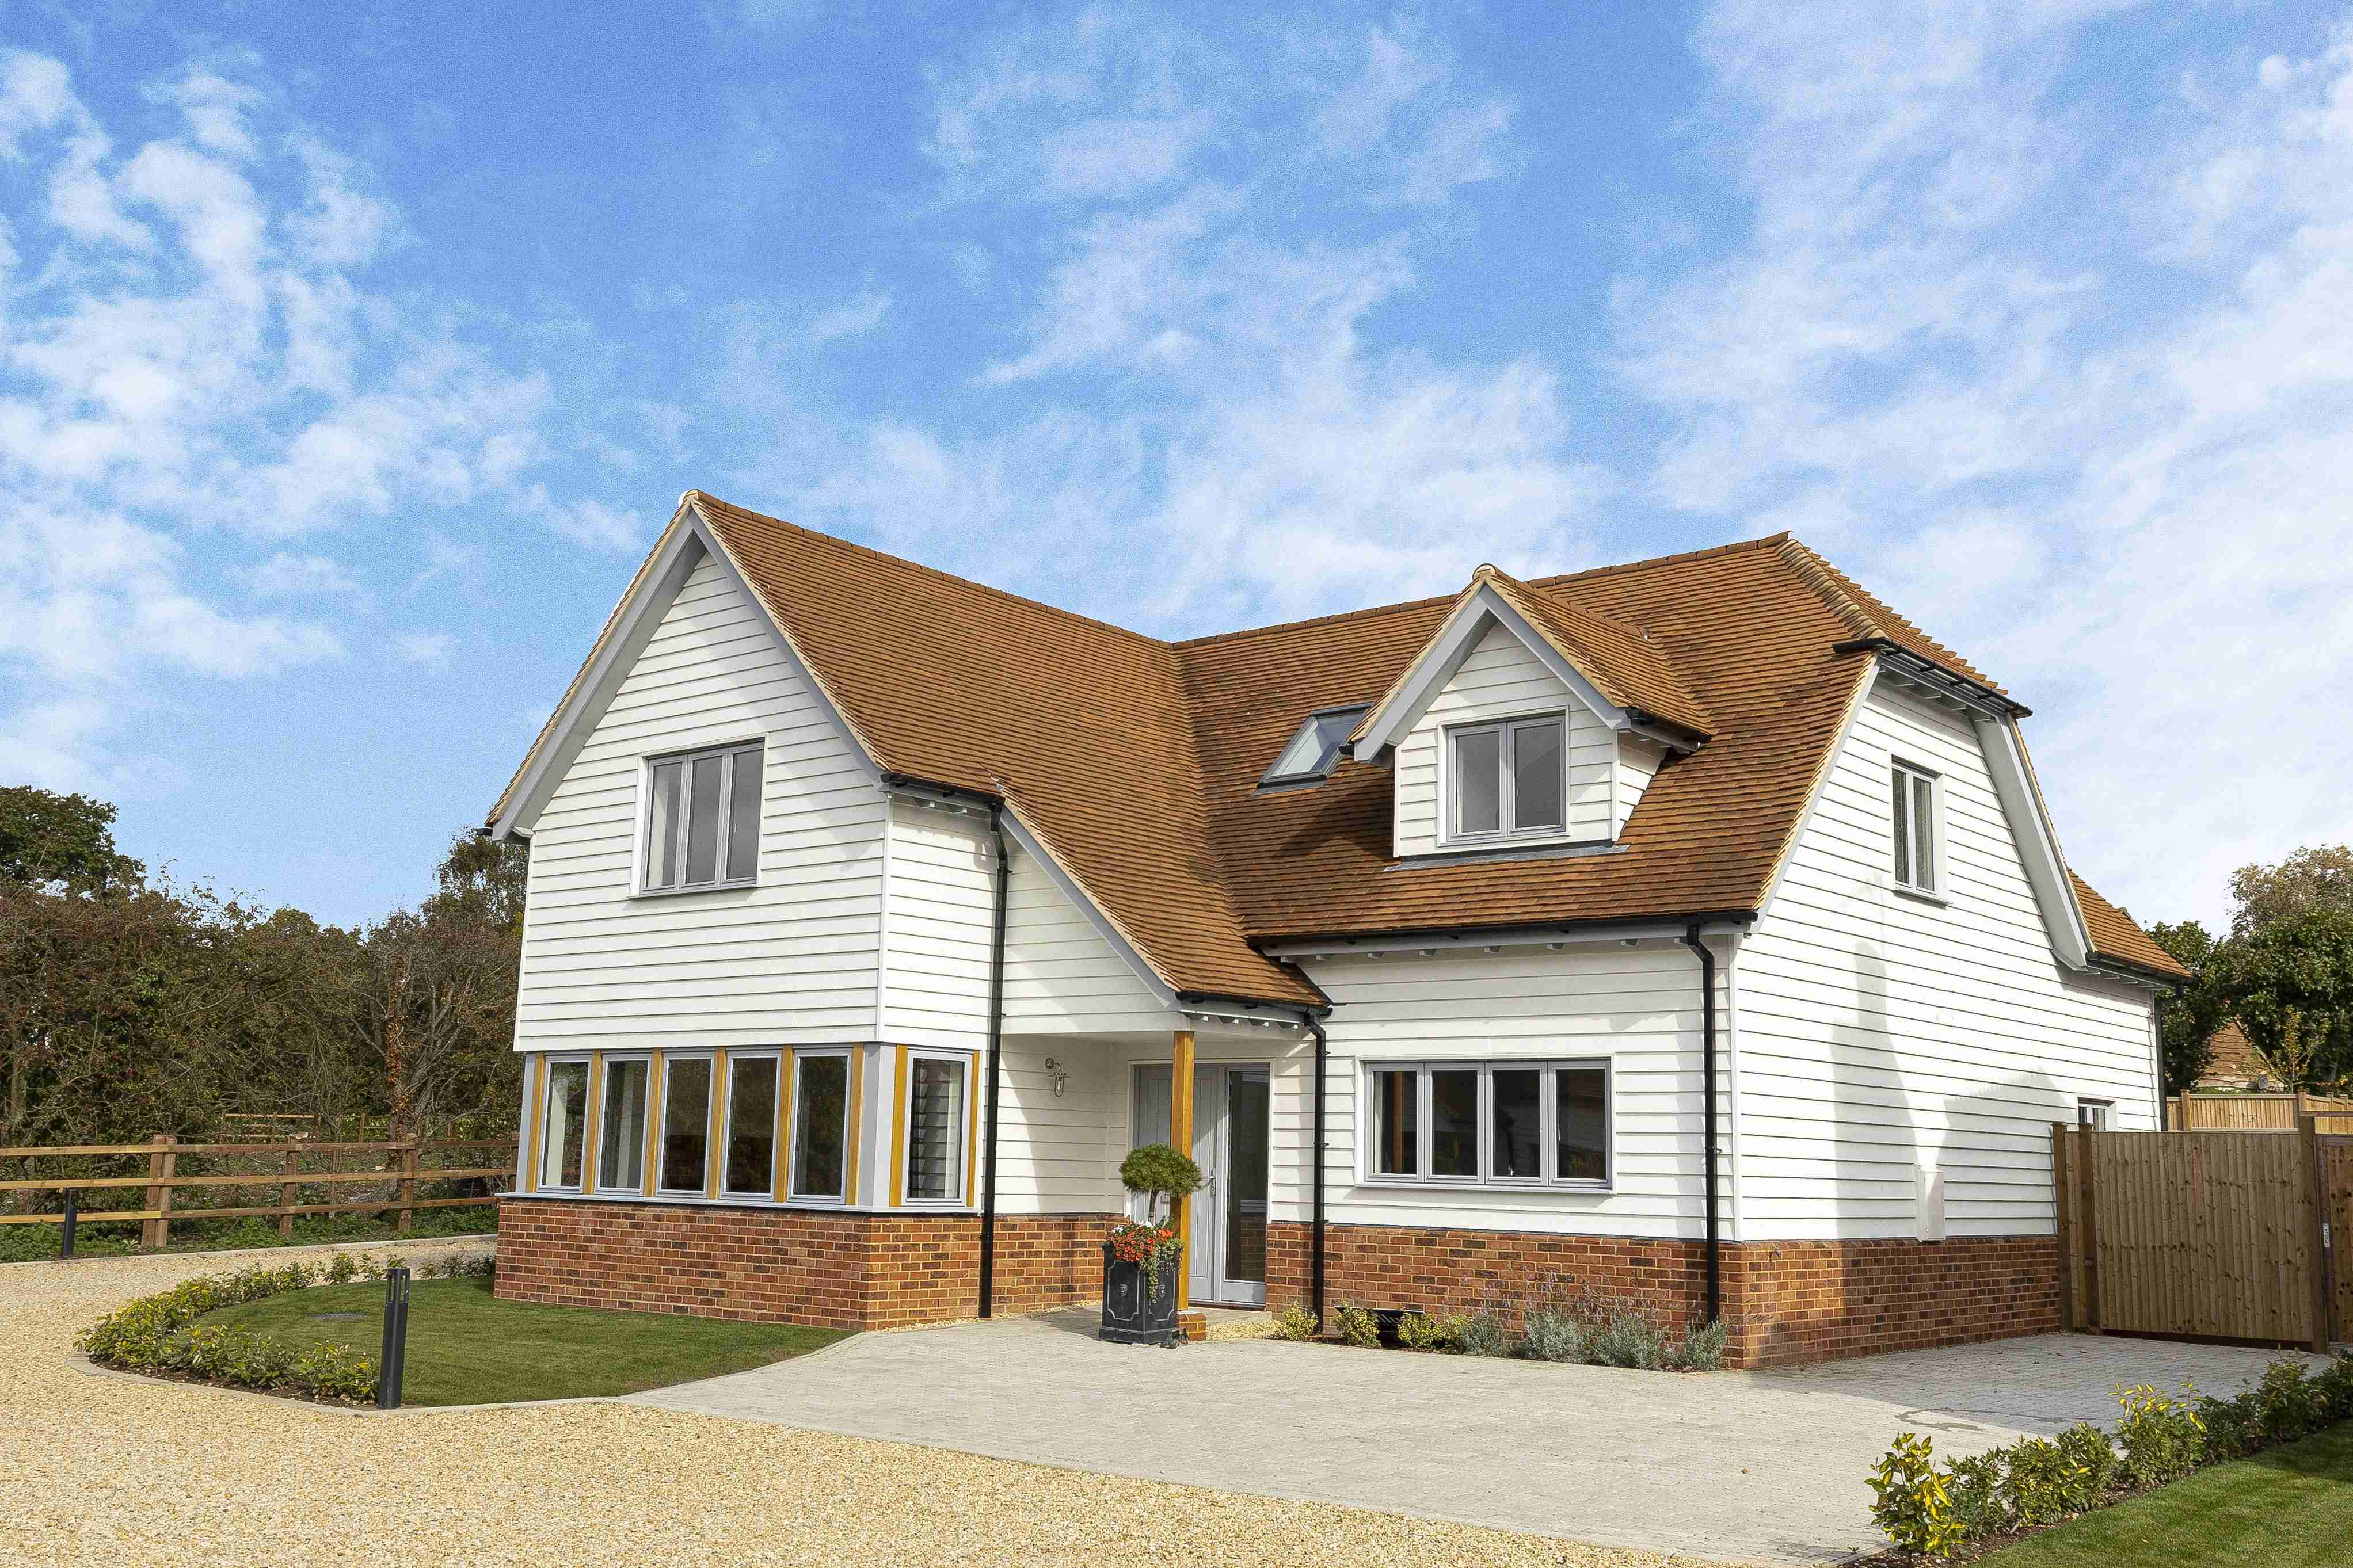 Architects Offer Huge Advantages When It Comes To Planning Permission For New Houses & Extensions